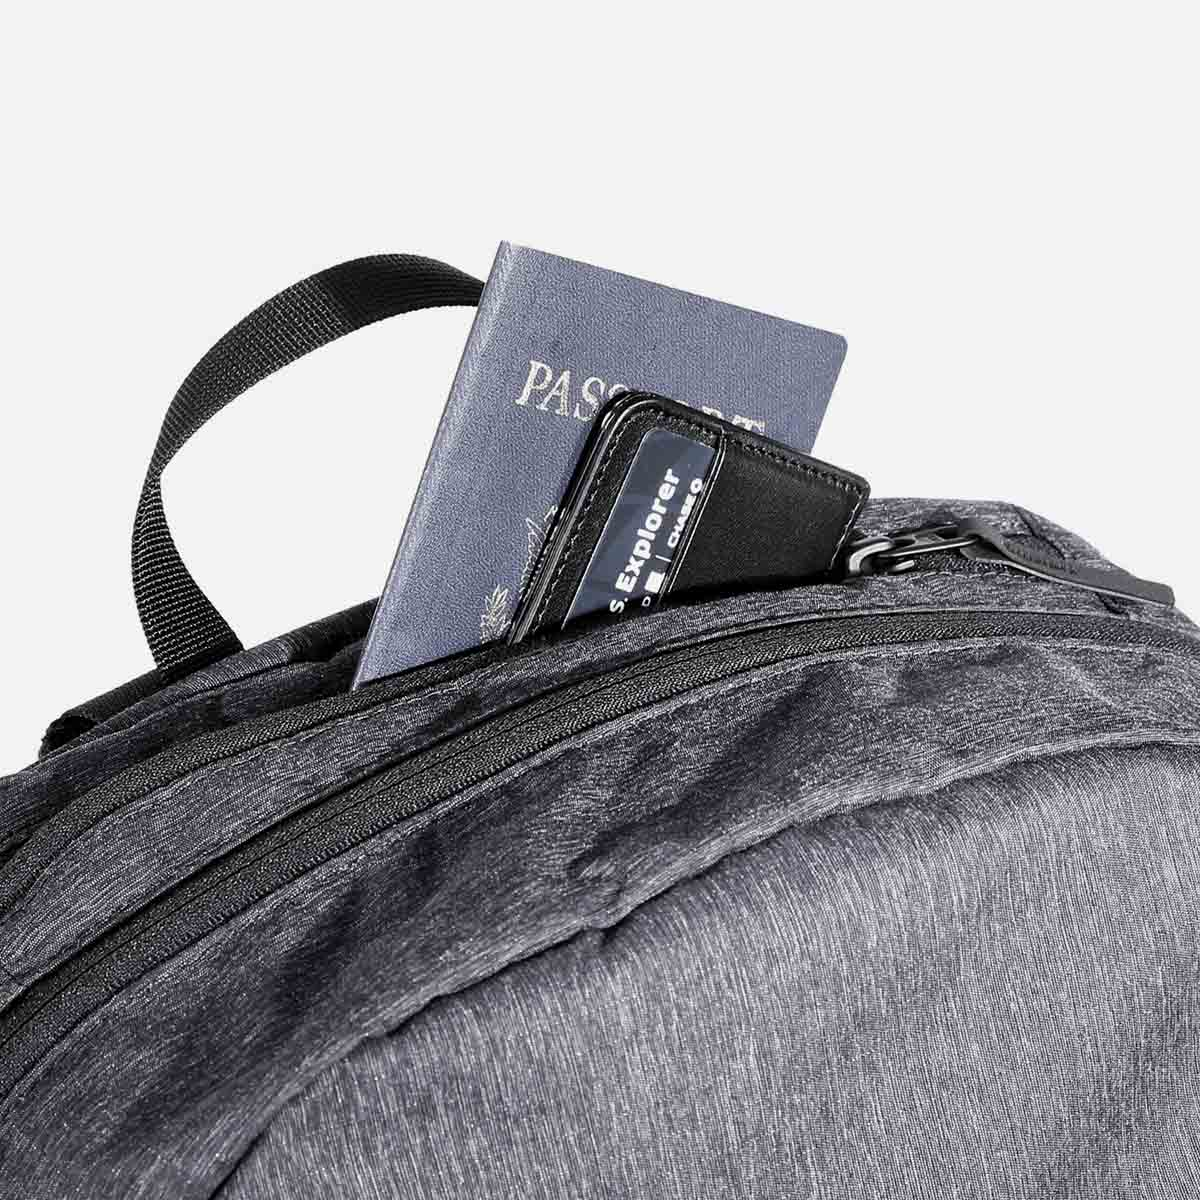 Quick-access pocket for travel documents.